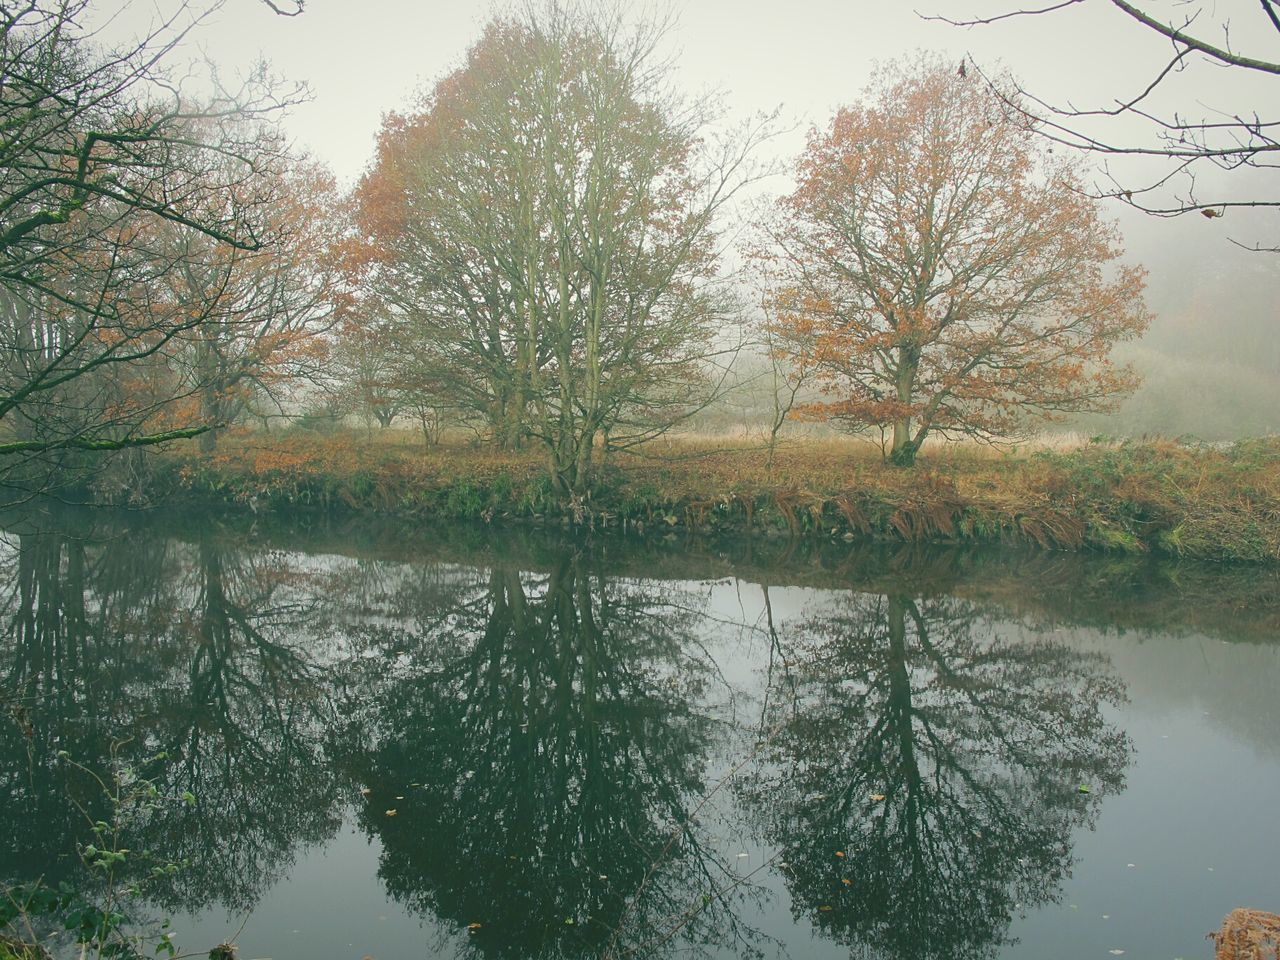 Foggy Morning Tranquil Scene Valleys Reflection EyeEmbestshots Fineartphotography Cold Temperature Frosty Days River Bank  Foggymornings Beauty In Nature Landscape Water Woodlands Change No People Scenics Non-urban Scene Tranquility Fog Outdoors Reed - Grass Family Autumnbeauty Autumn Leaves WoodLand Rural Scene